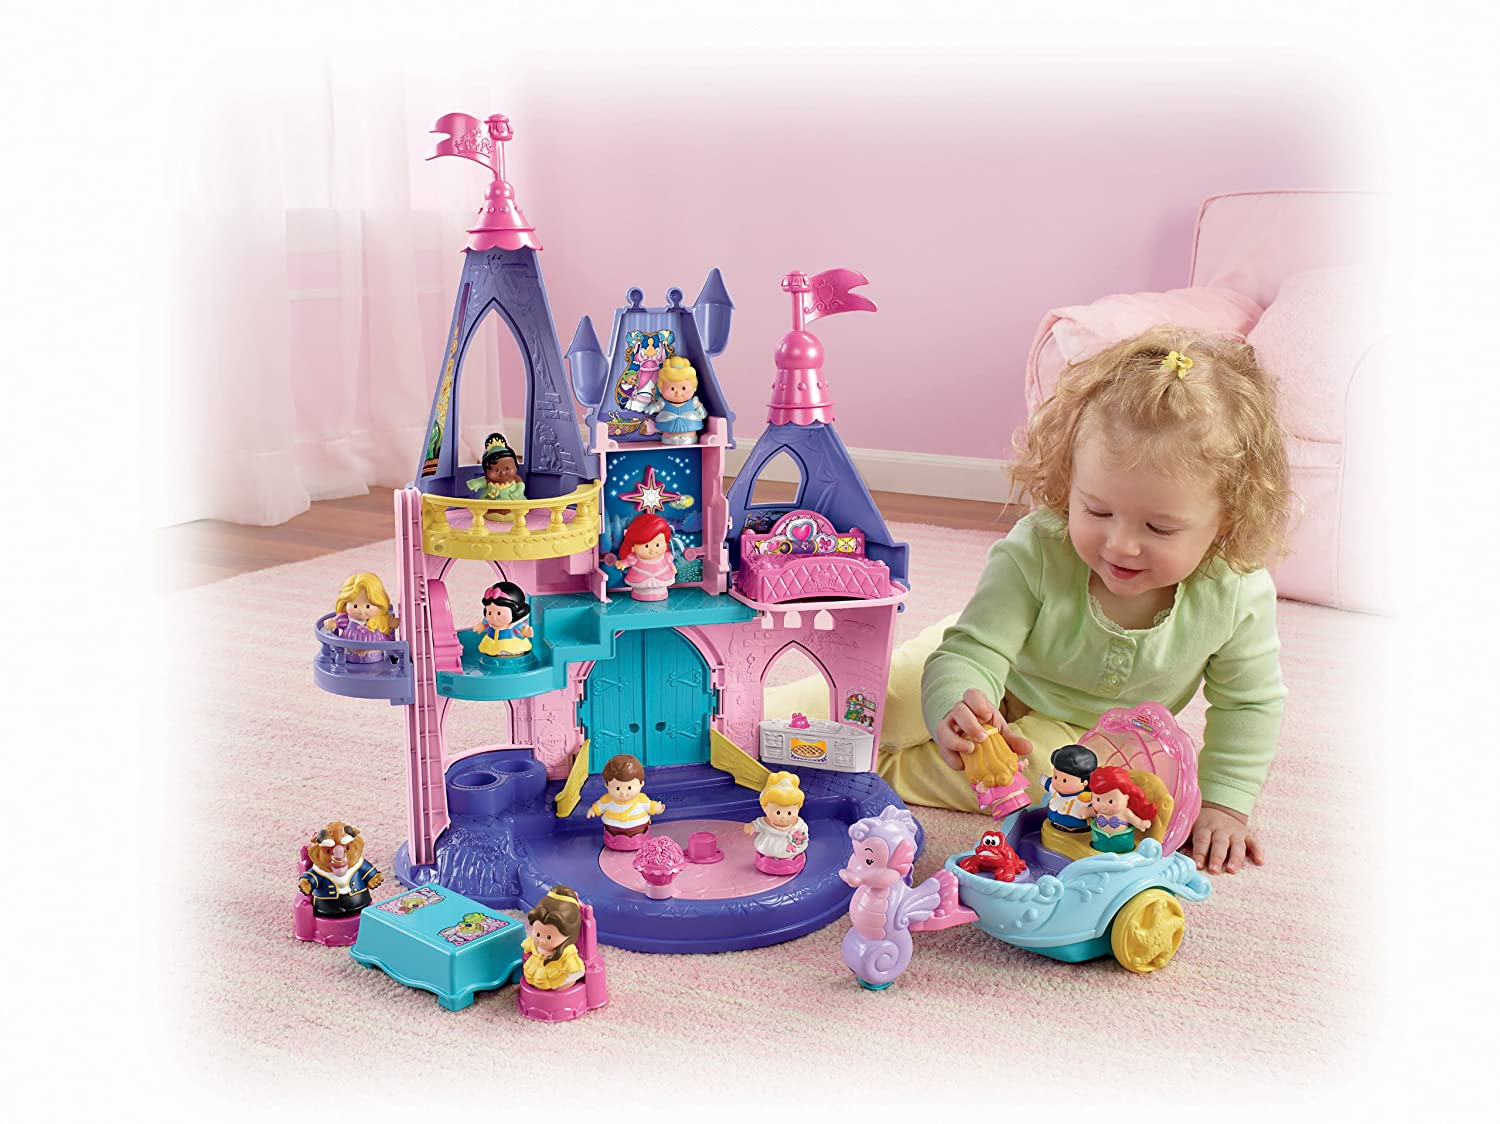 Dolls & Bears Dolls, Clothing & Accessories Disney Princess Snow White & The 7 Dwarfs Dolls Play Set Less Expensive